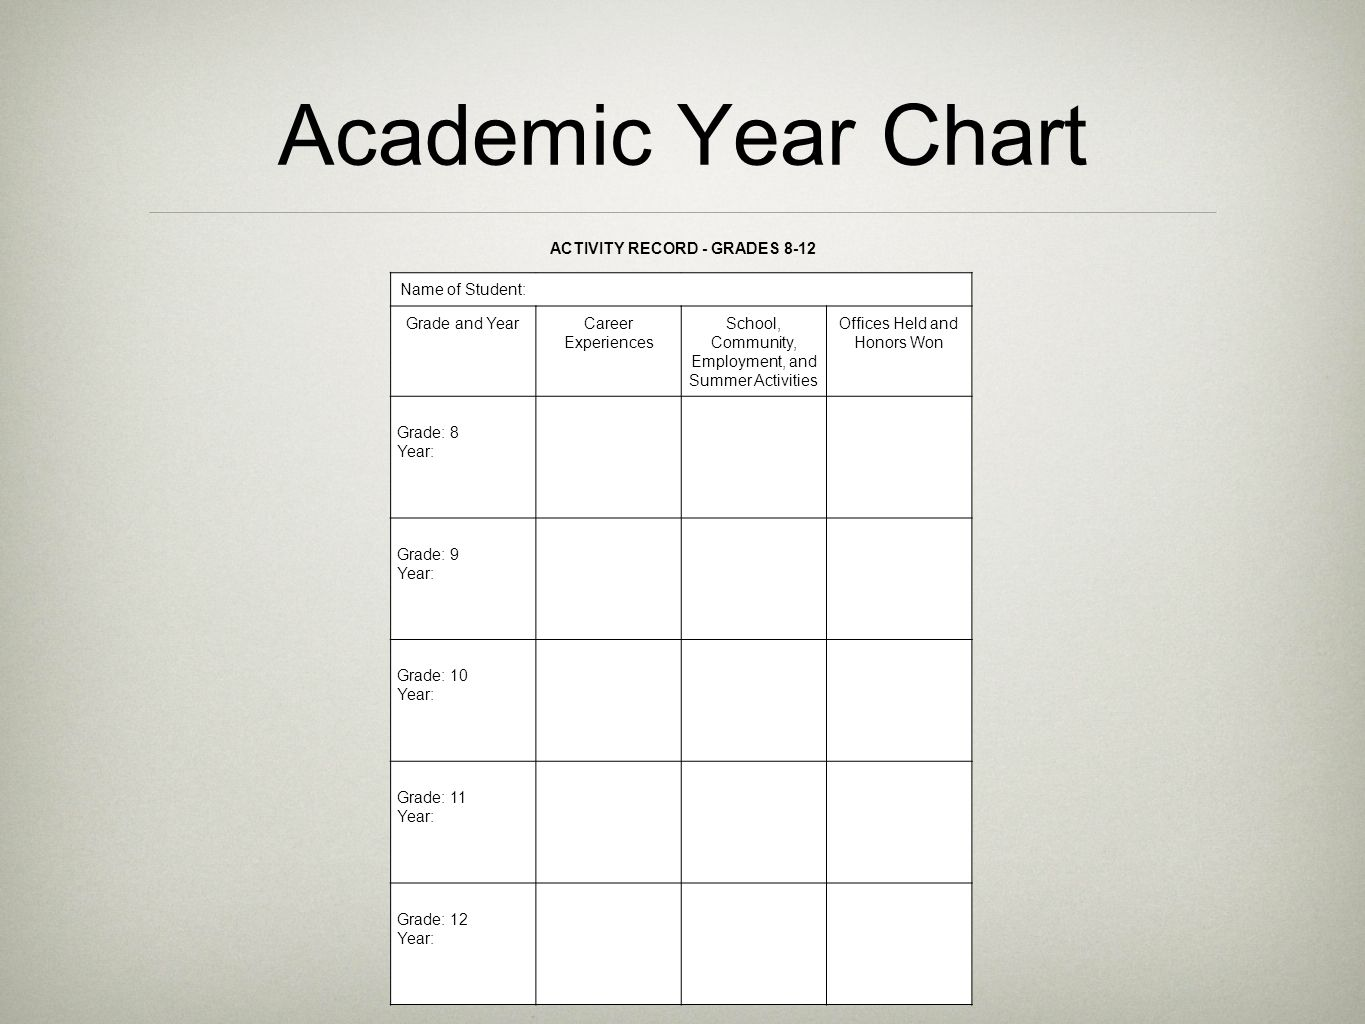 Academic Year Chart Name of Student: Grade and YearCareer Experiences School, Community, Employment, and Summer Activities Offices Held and Honors Won